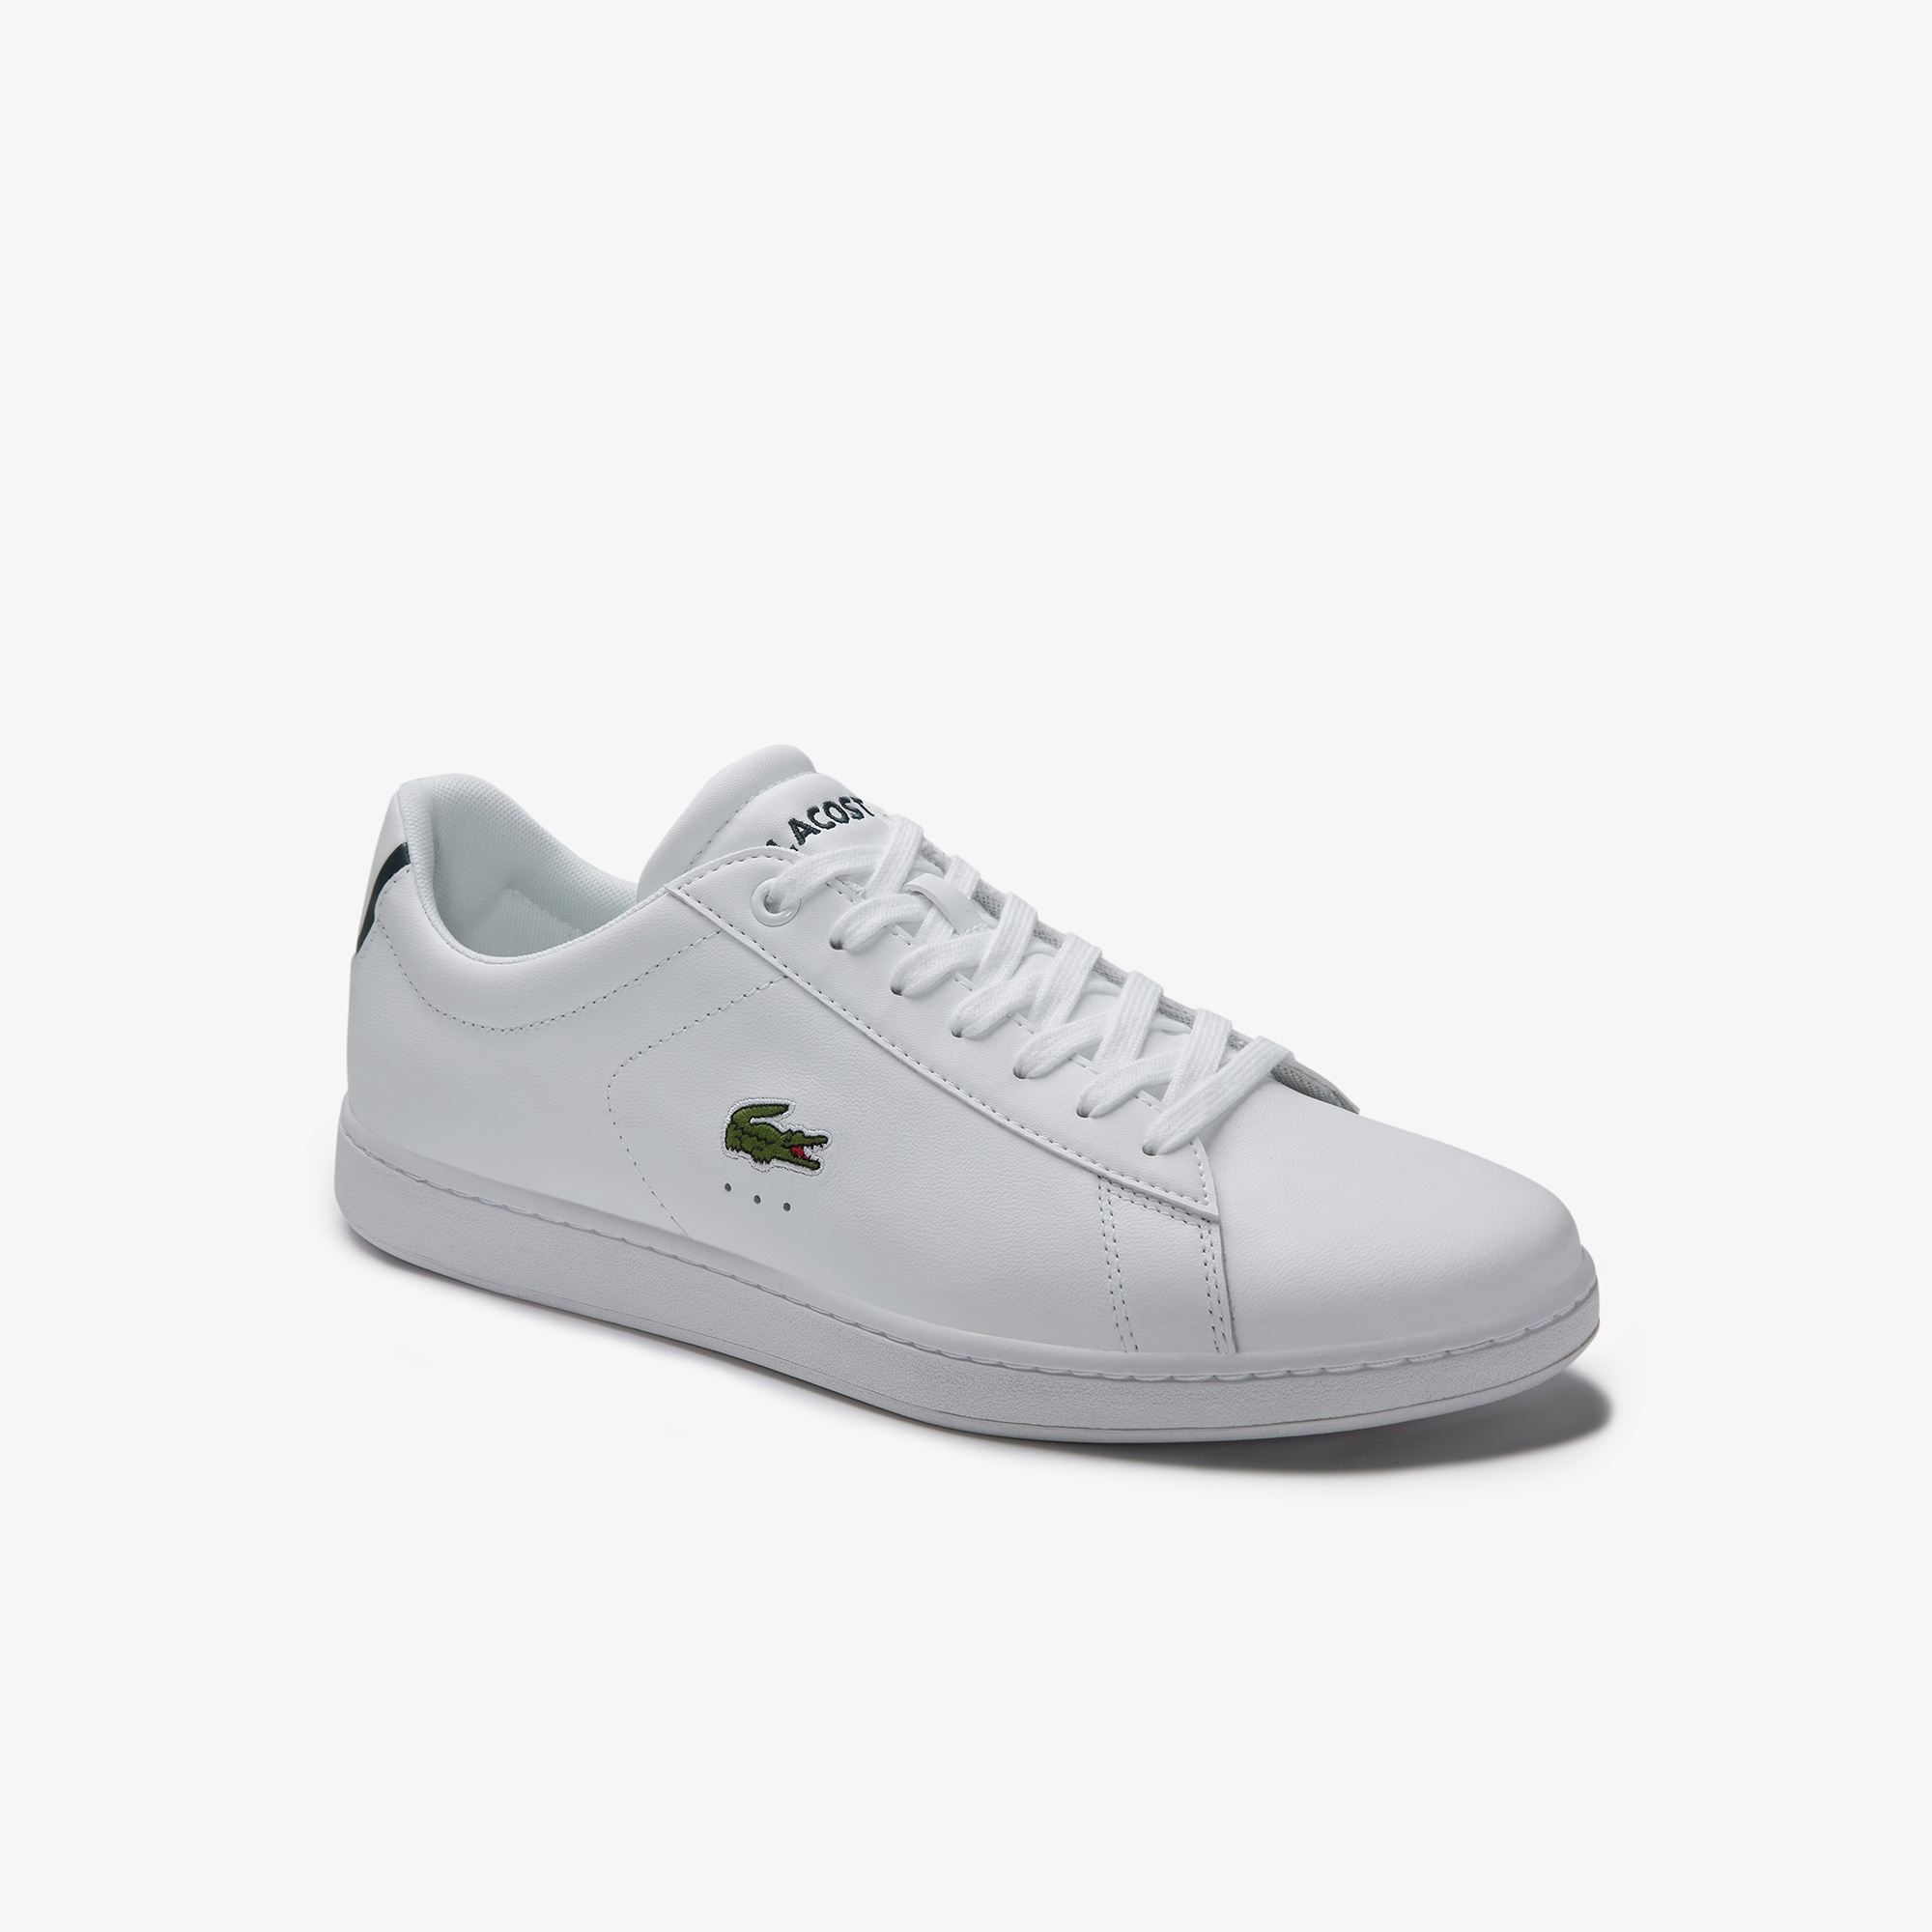 Men's Carnaby Evo BL Leather Trainers